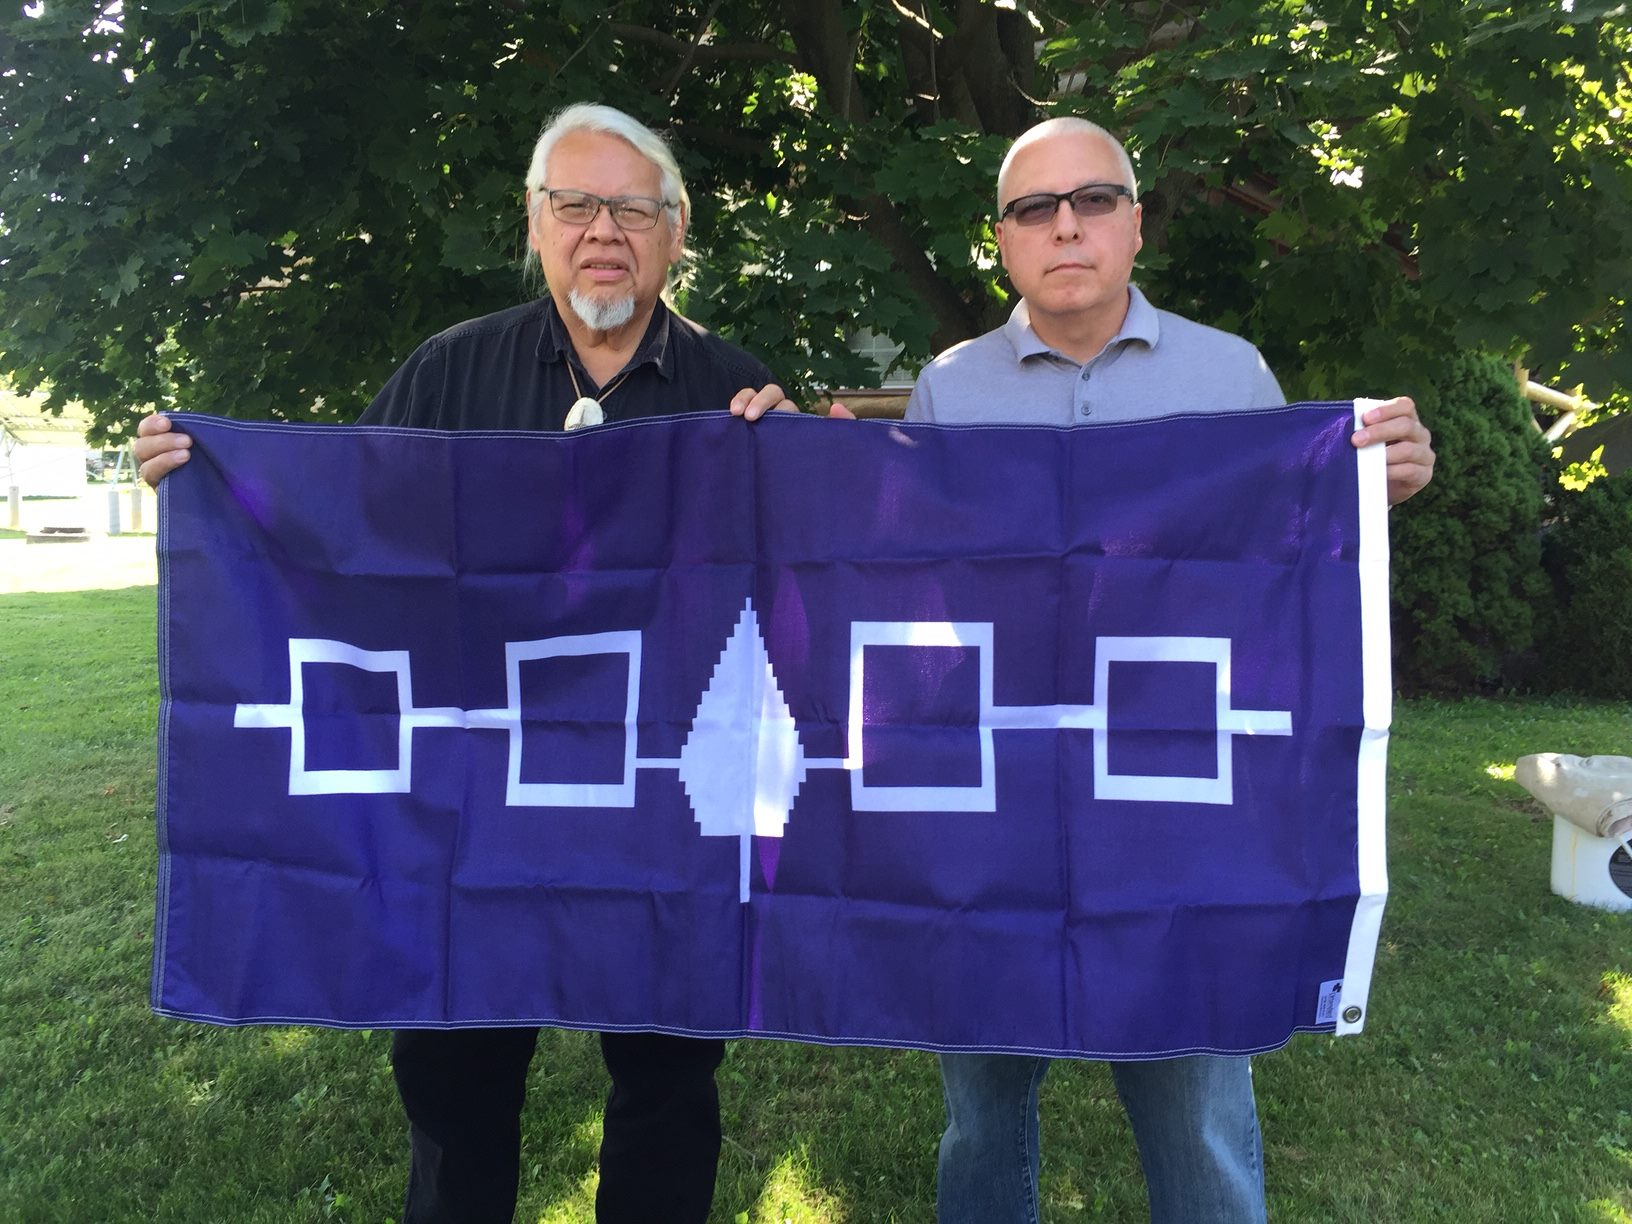 Rick Hill and Tim Johnson with the flag of the Six Nations: Hill, a Tuscorara, and Johnson, a Mohawk, were deeply involved with the genesis of what's become an iconic symbol of the Haudenosaunee, or Iroquois Confederacy. (Image courtesy Tim Johnson)